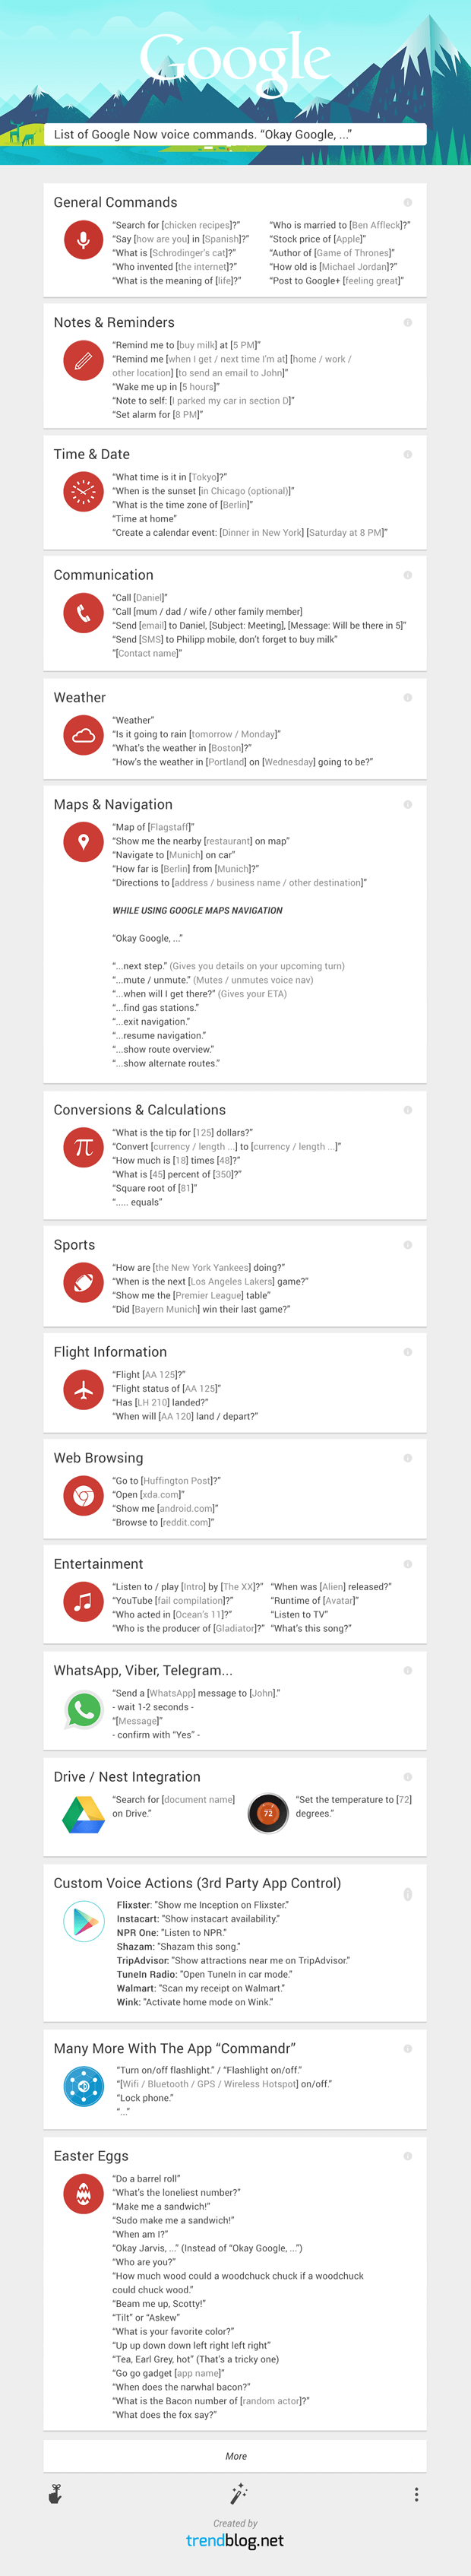 Google Now voice commands list infographic